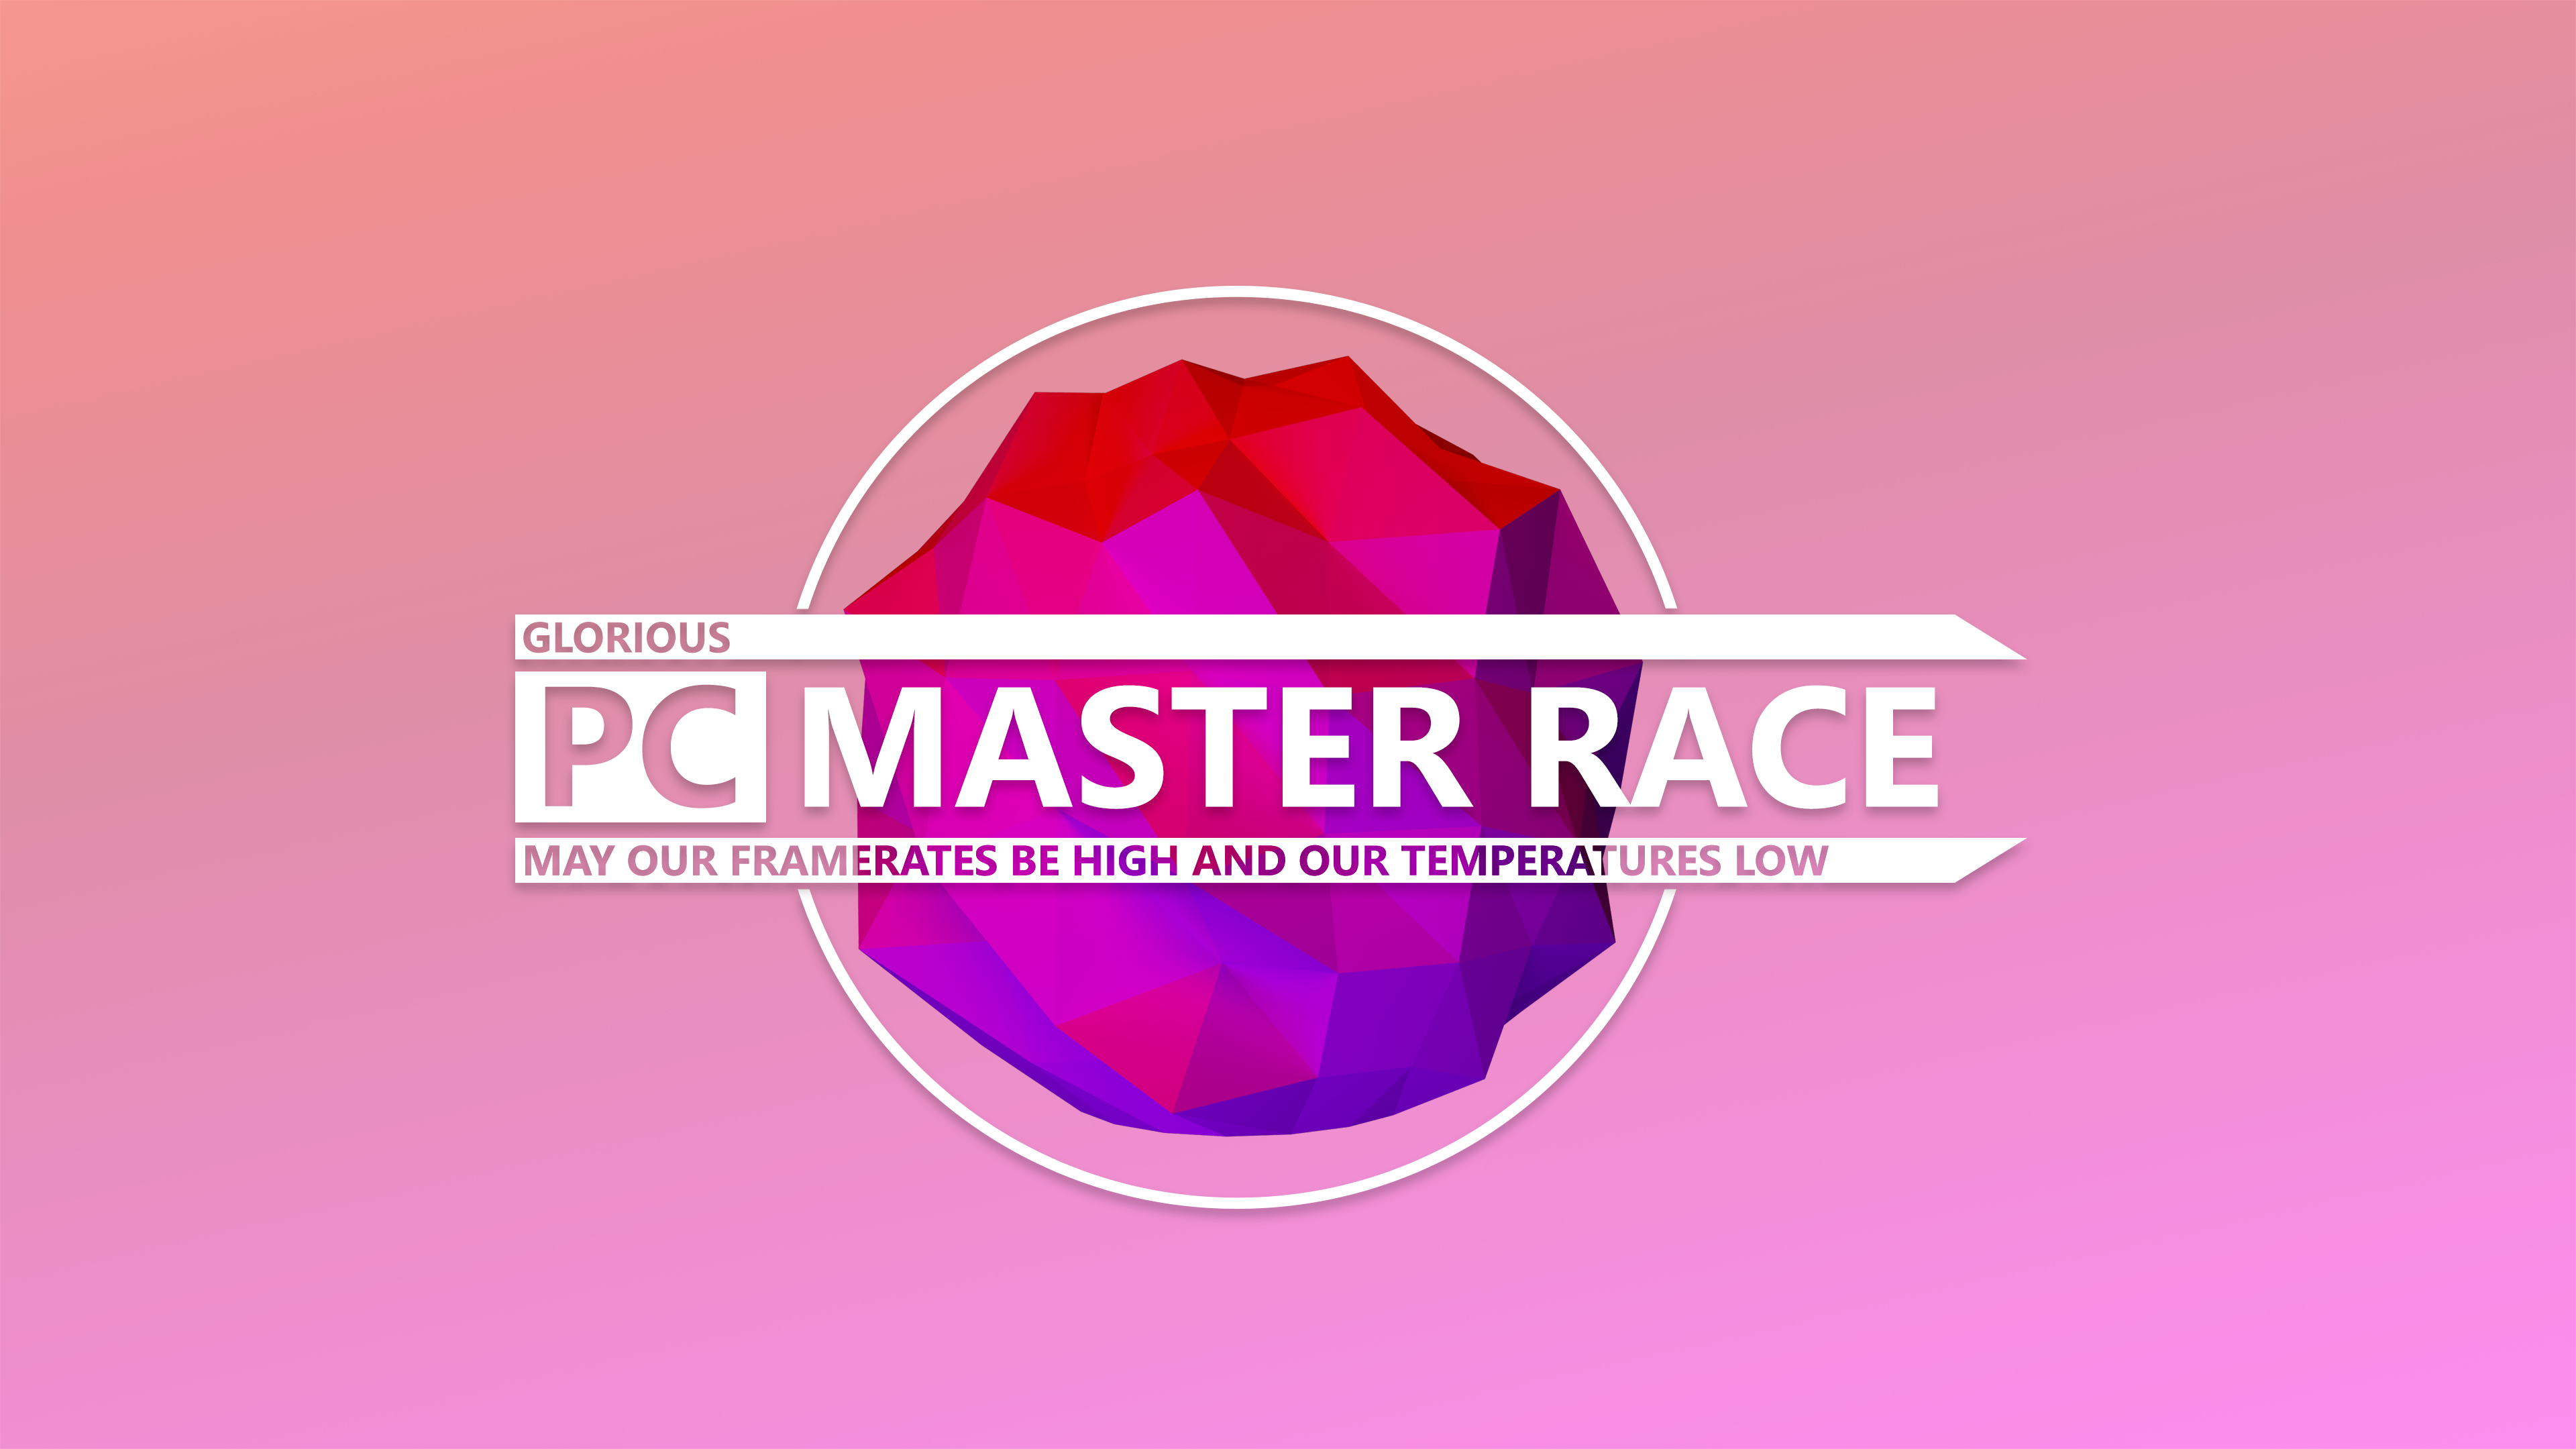 PC MASTER RACE 4k Ultra HD Wallpaper | Background Image ...